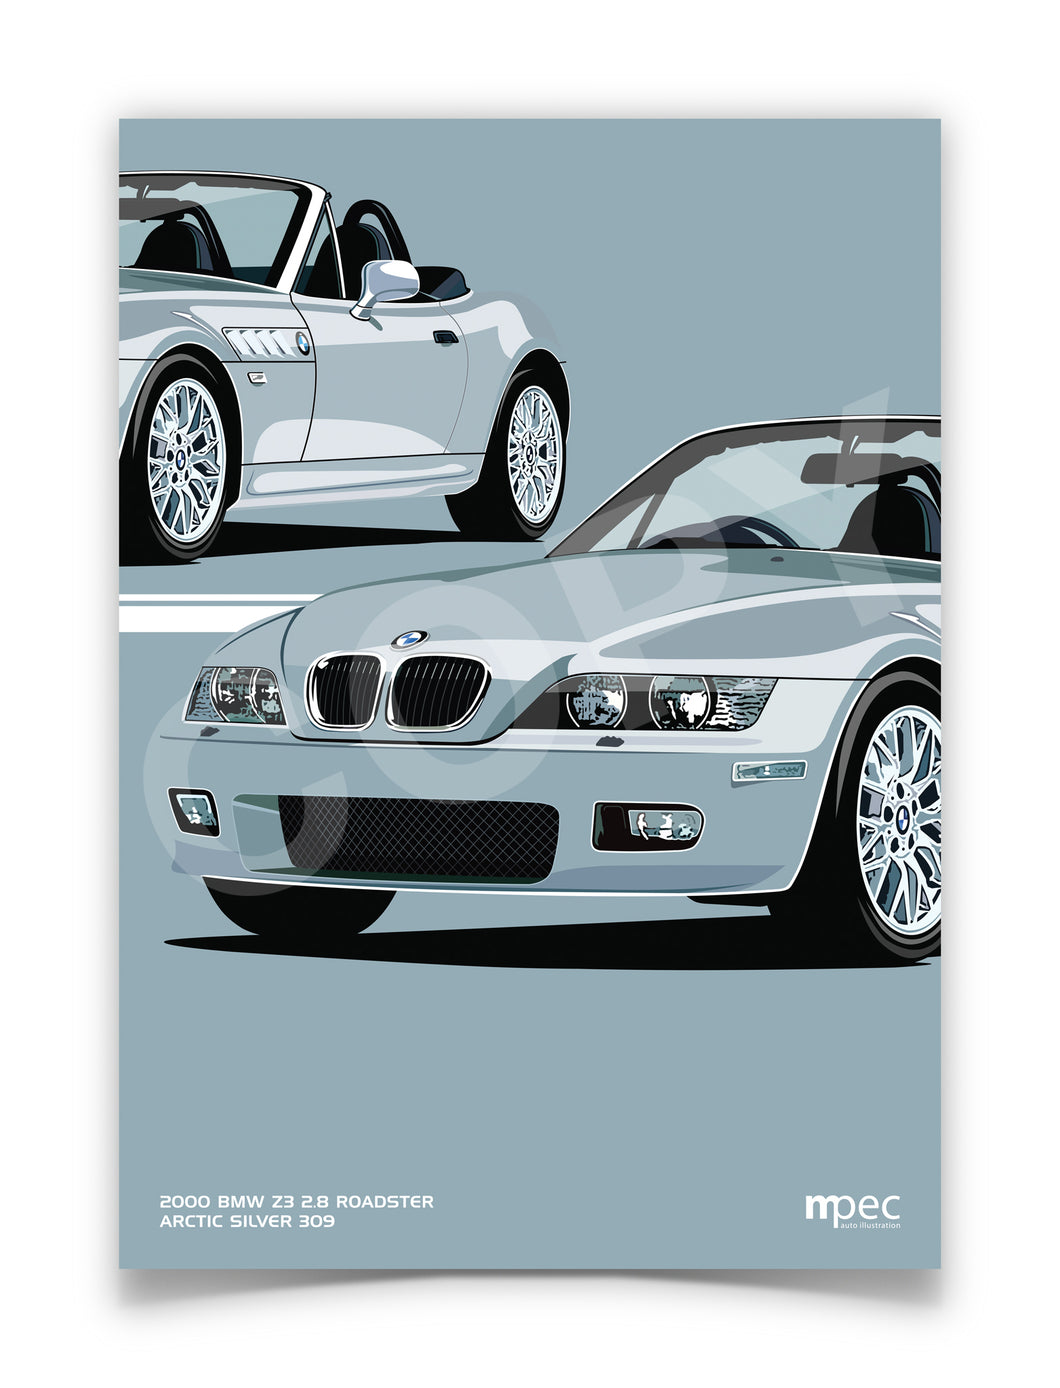 Print of 2000 BMW Z3 2.8 Roadster in Arctic Silver 309 - Double